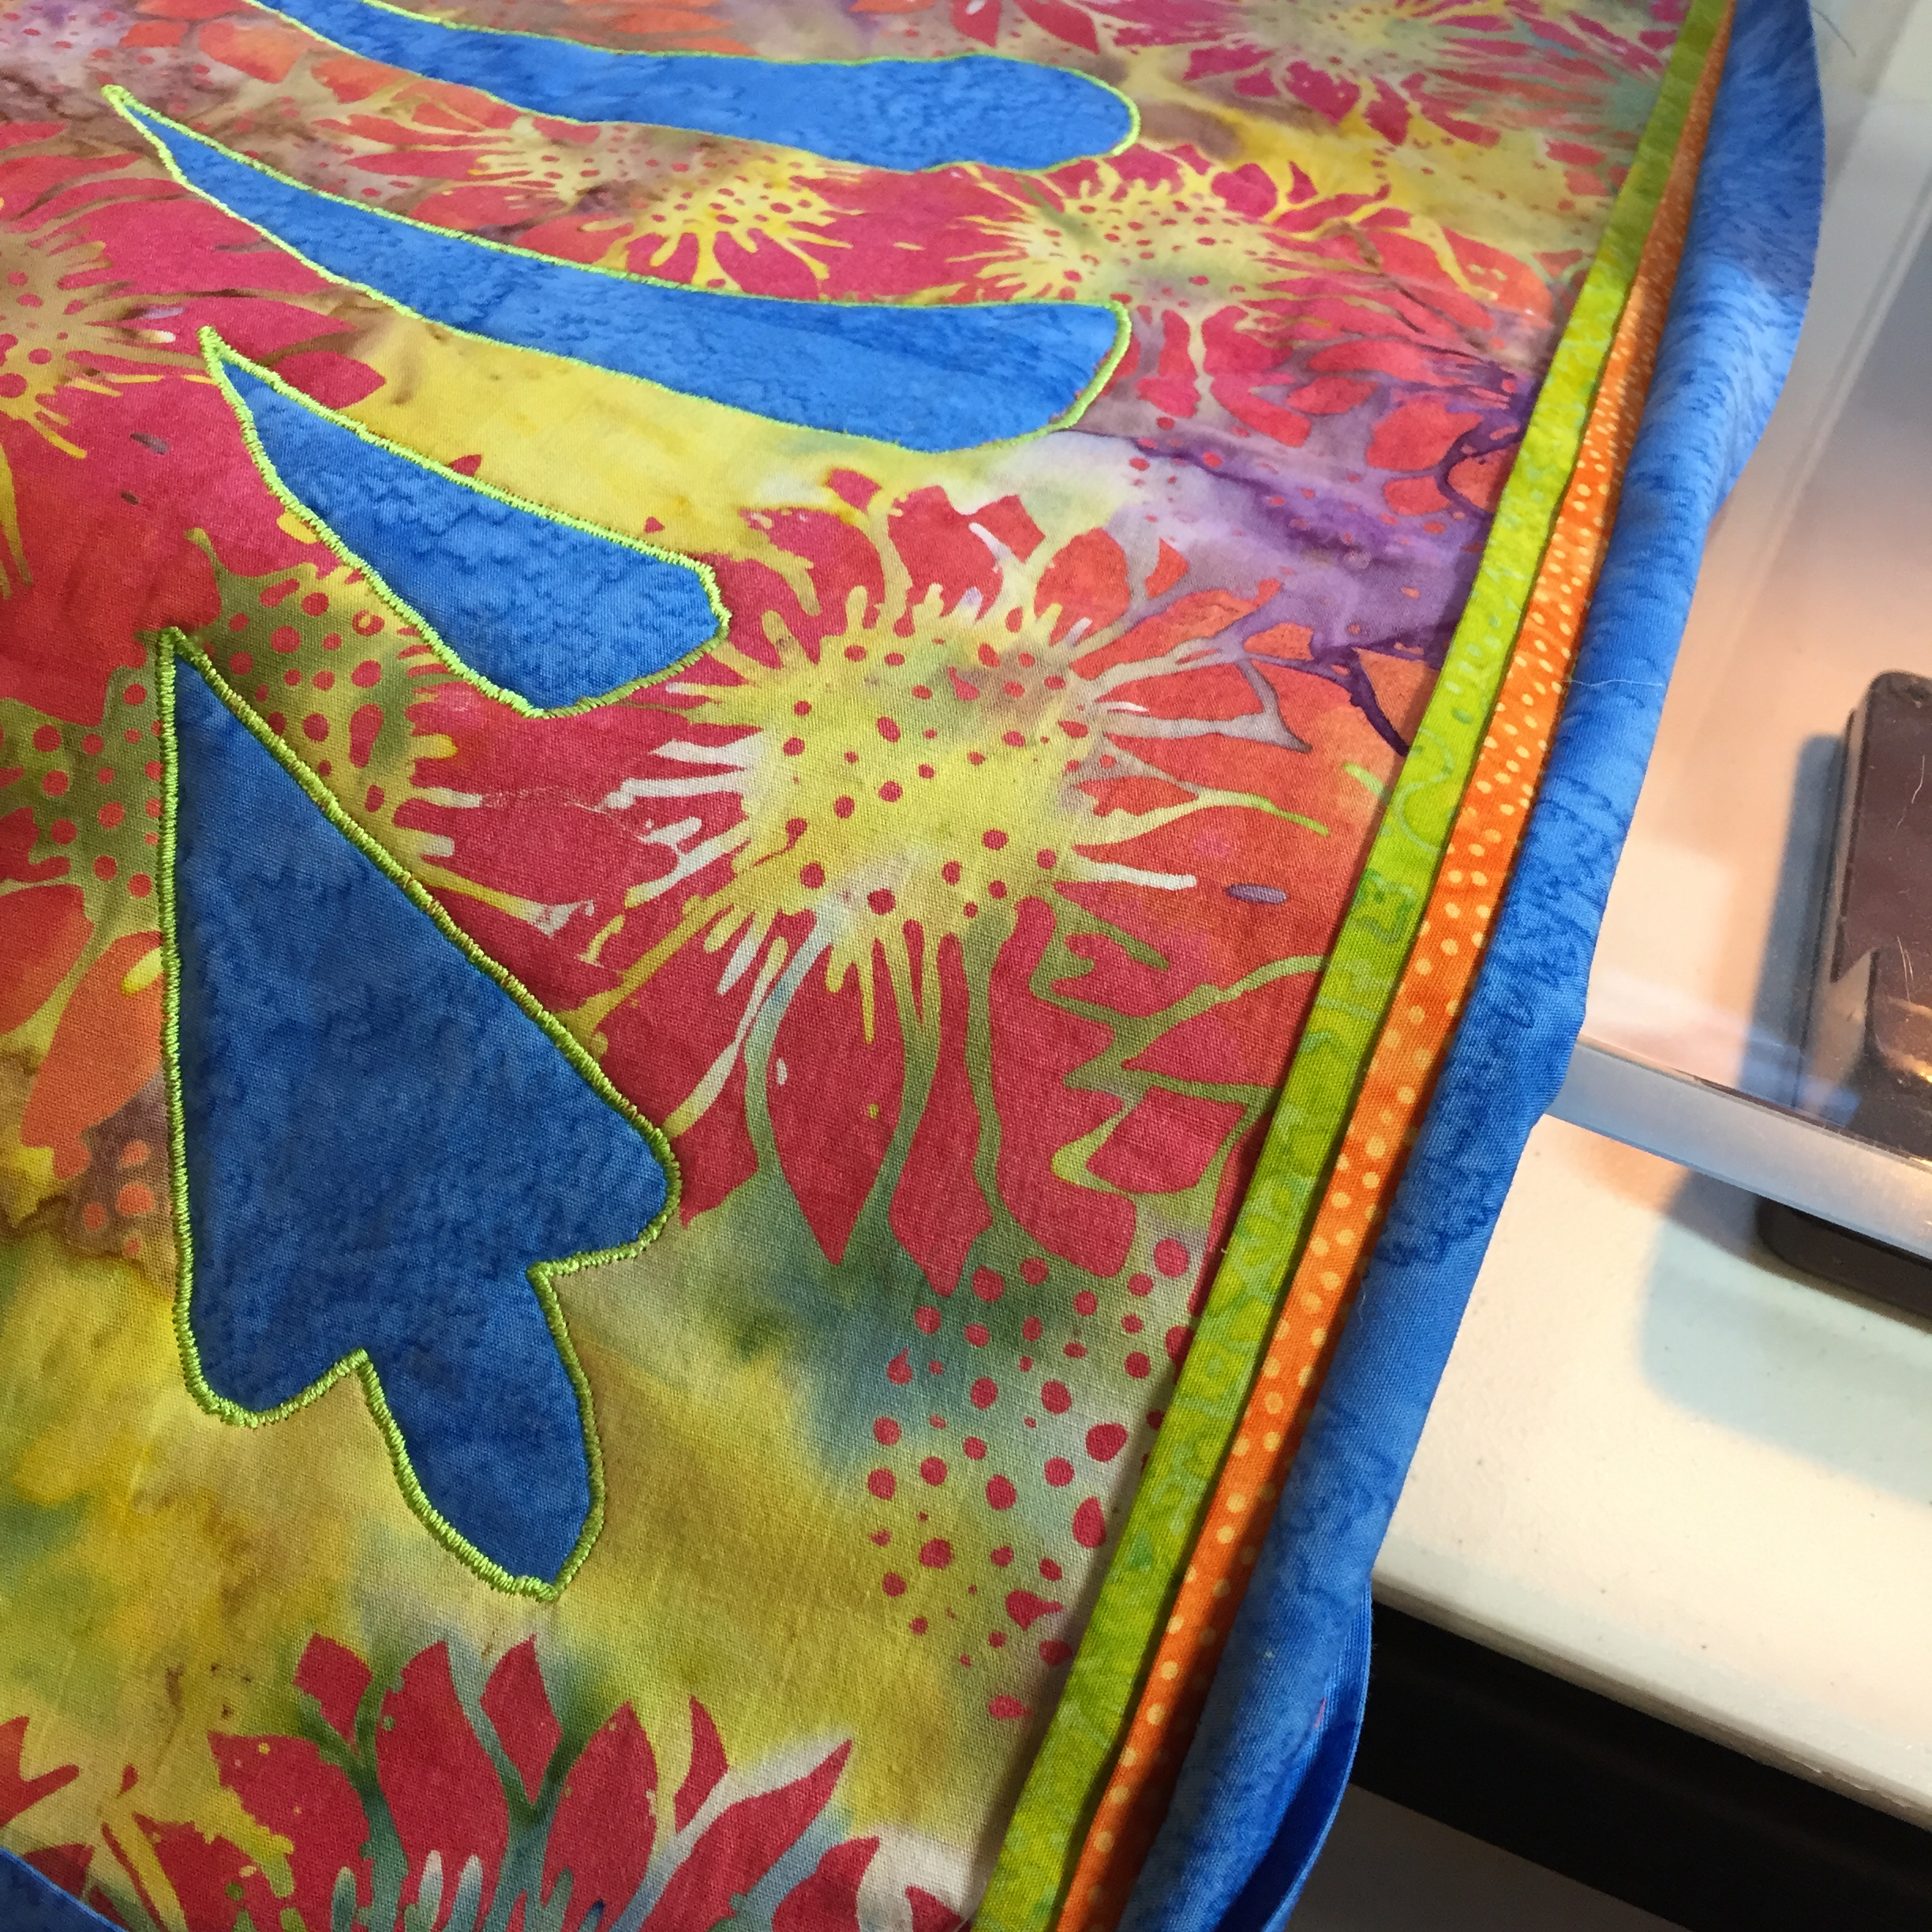 Binding: All sewn on and ready to hand-stitch.